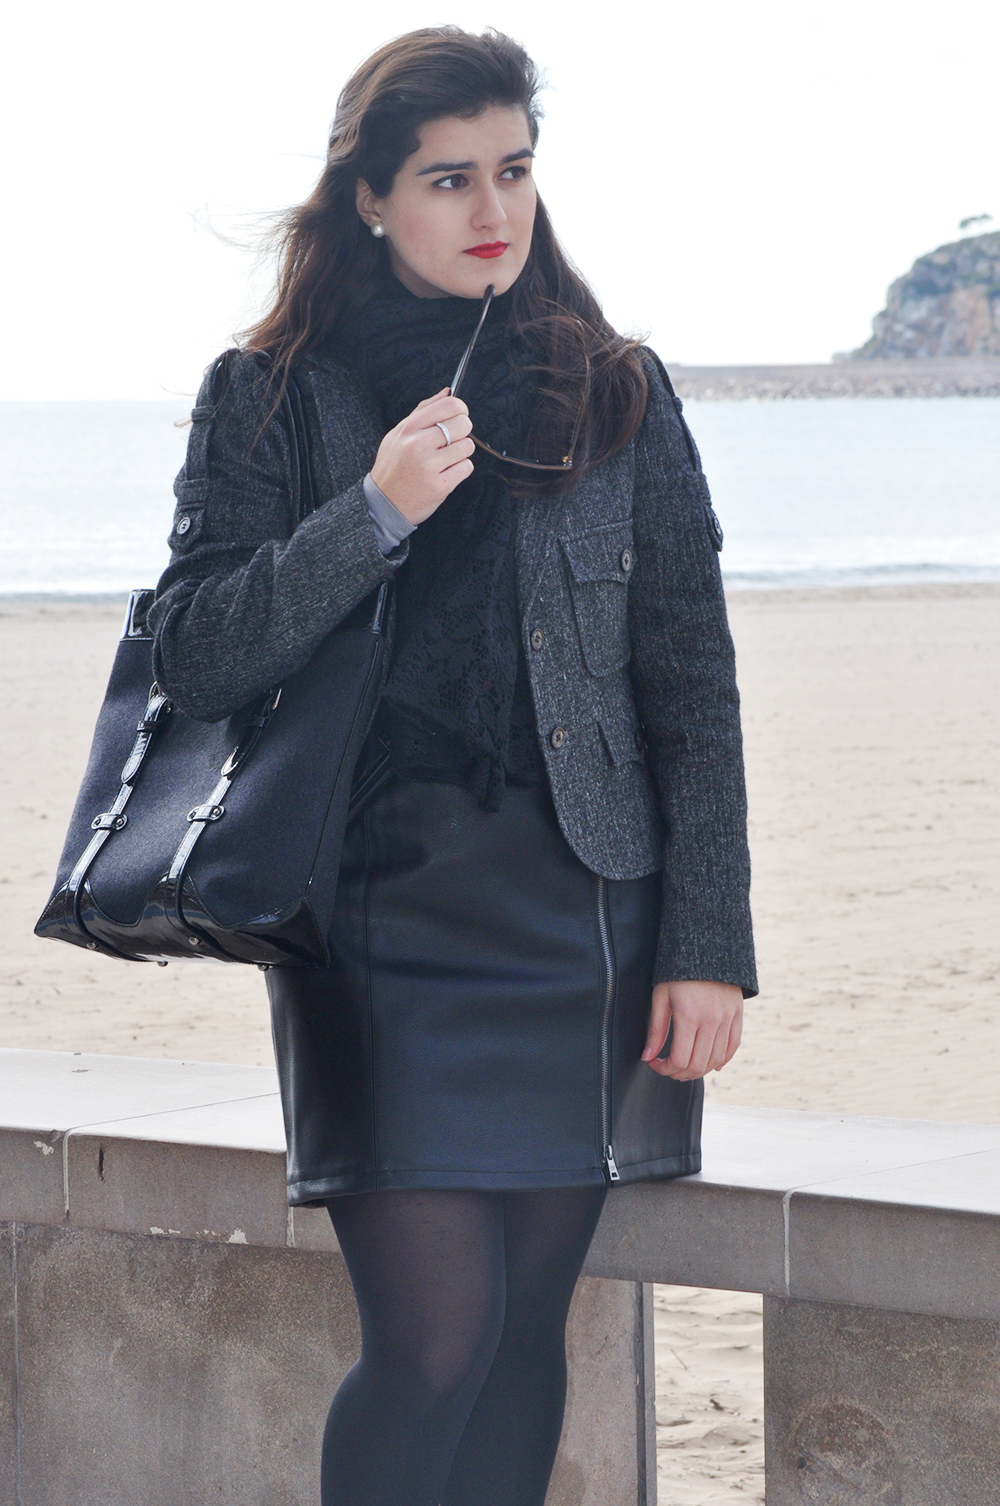 something fashion blog spain valencia fblogger, amanda ramon, ysl jacket vintage yves saint laurent military grey, cortefiel leather dress, miumiu sunglasses, oropesa del mar beach winter coast, burberry bag, total black outfit vintage booties